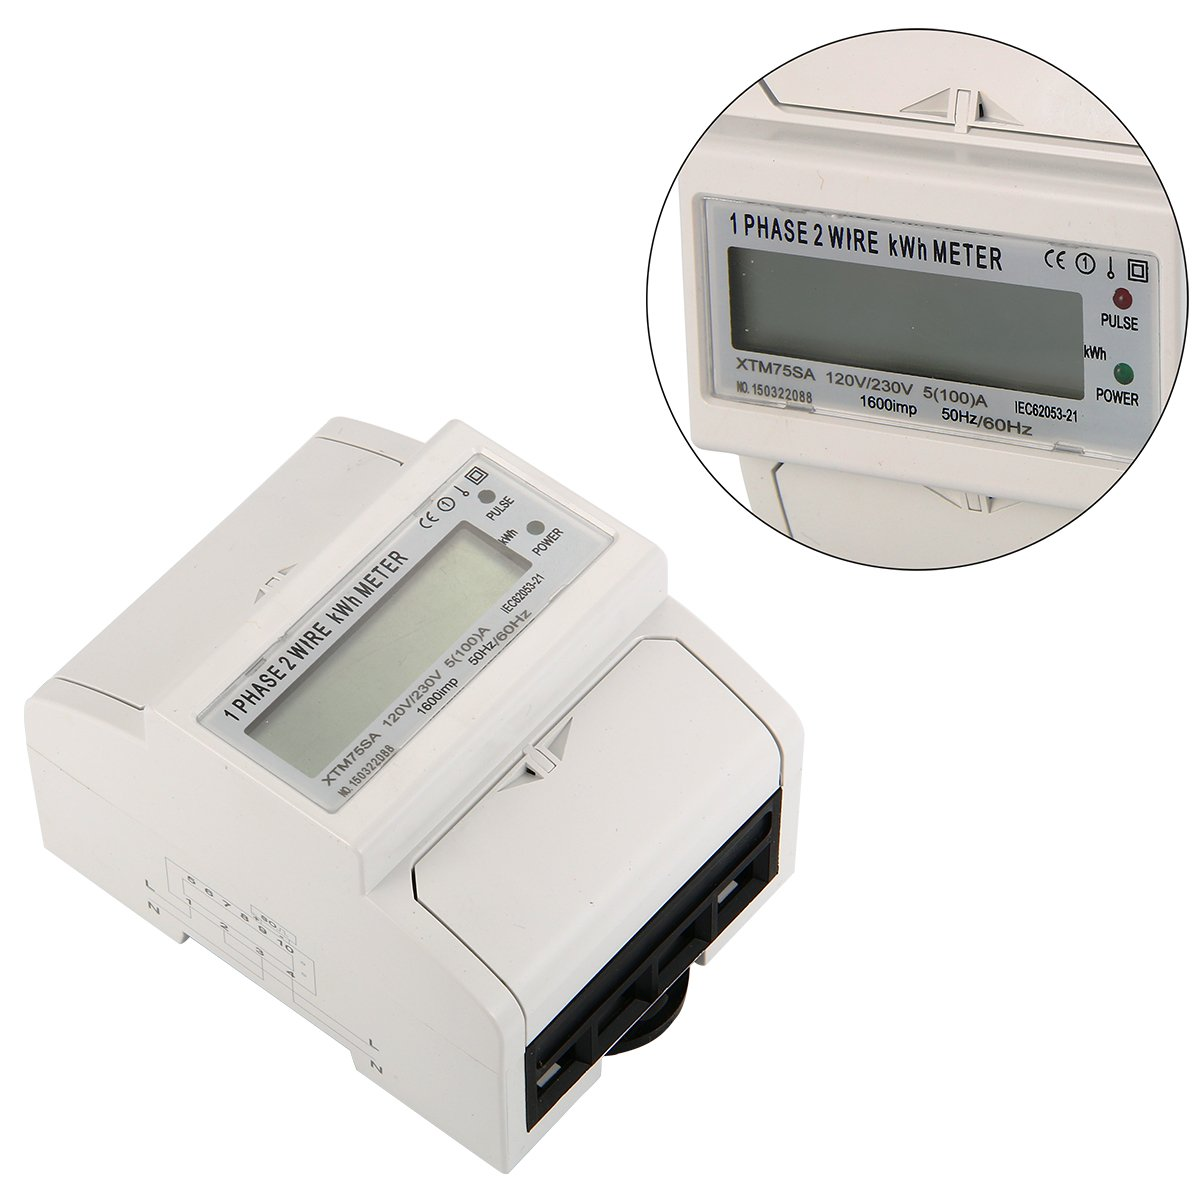 XCSOURCE Kilovatio-hora Metros Monof/ásico Metros Energ/ía 100A DE DIN-Rail Power Meter BI104